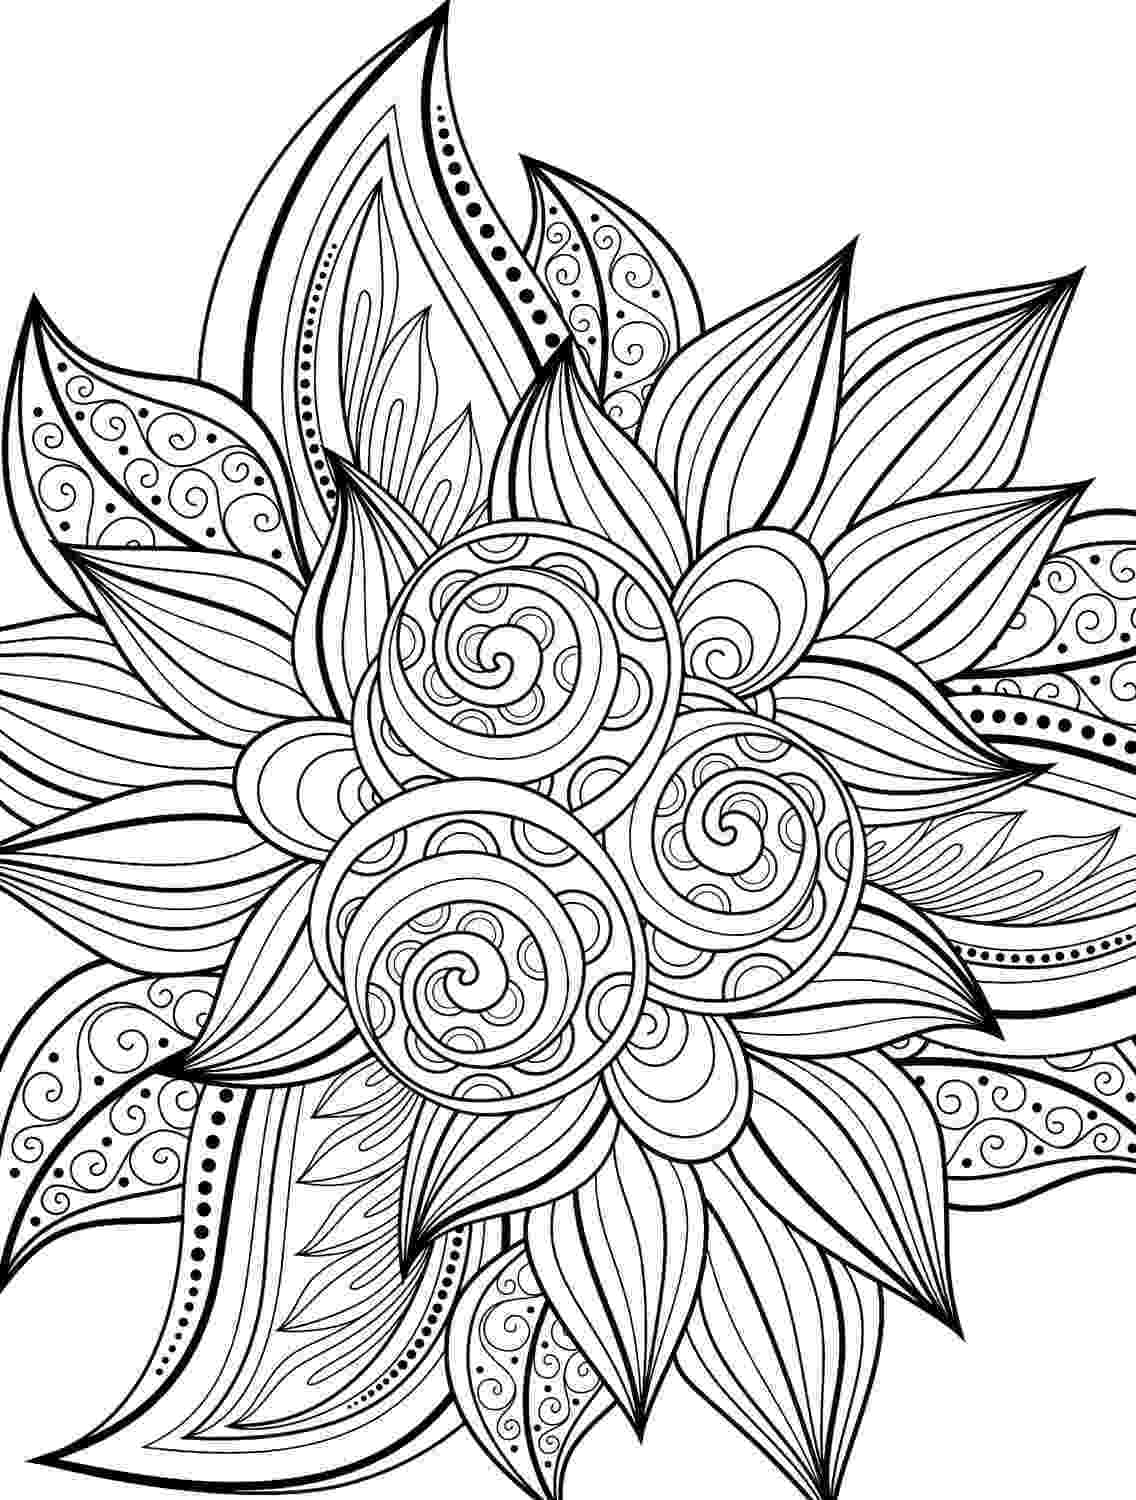 awesome coloring pictures drawing mandala design free image on pixabay pictures awesome coloring